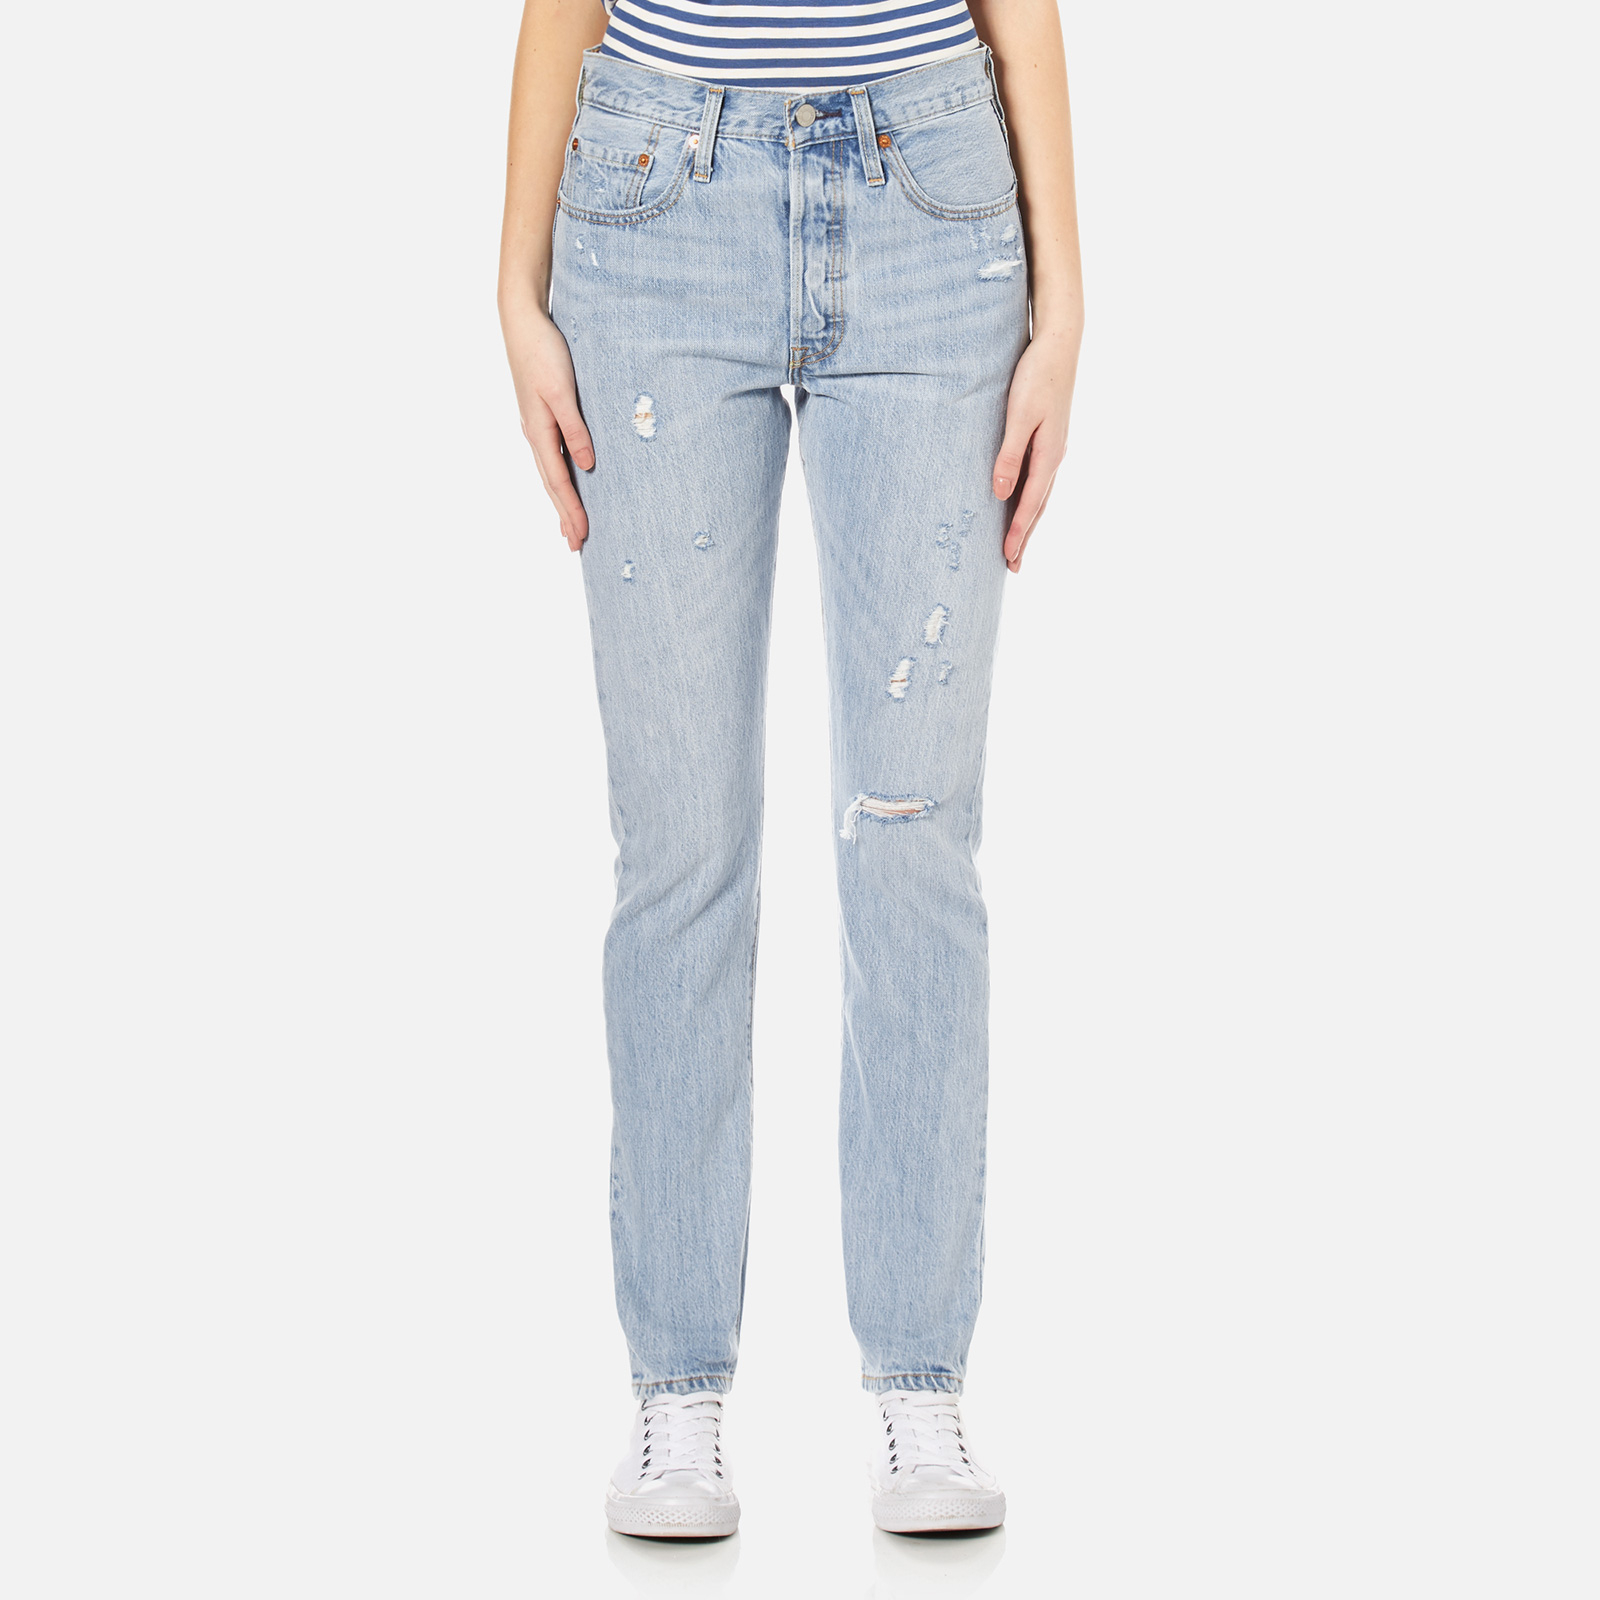 e213f42c0f4 Levi's Women's 501 Skinny Jeans - Clear Minds - Free UK Delivery over £50